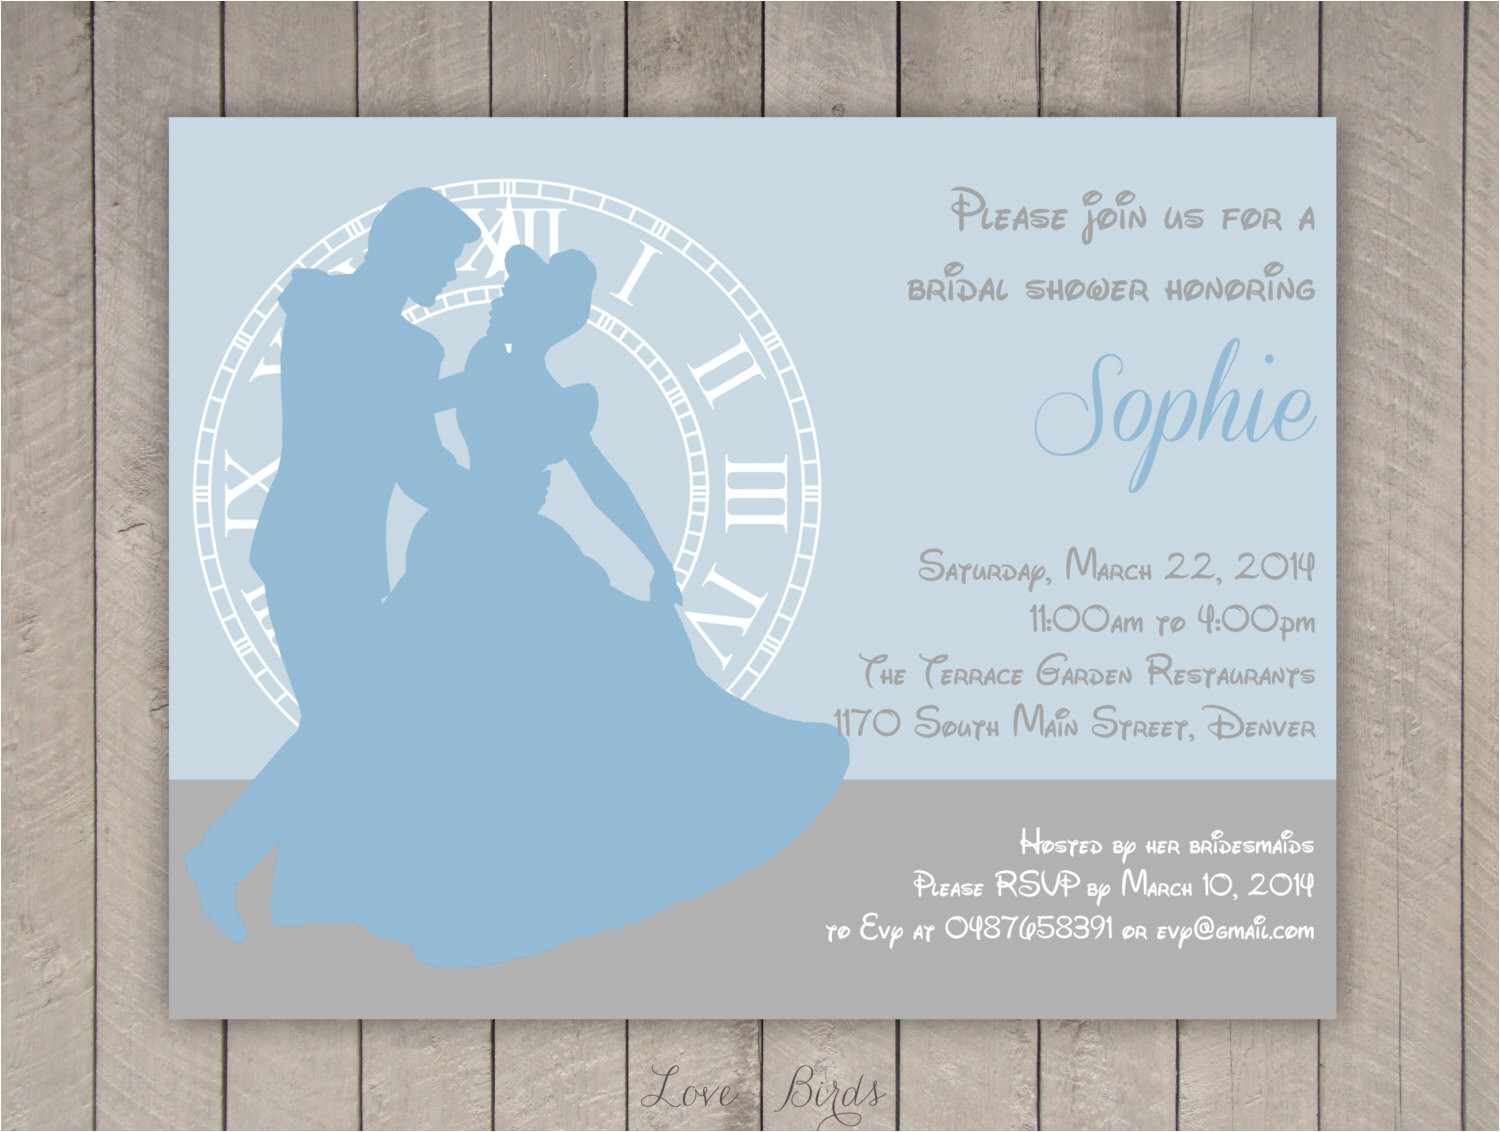 bridal shower invitation personalize file then print on hi